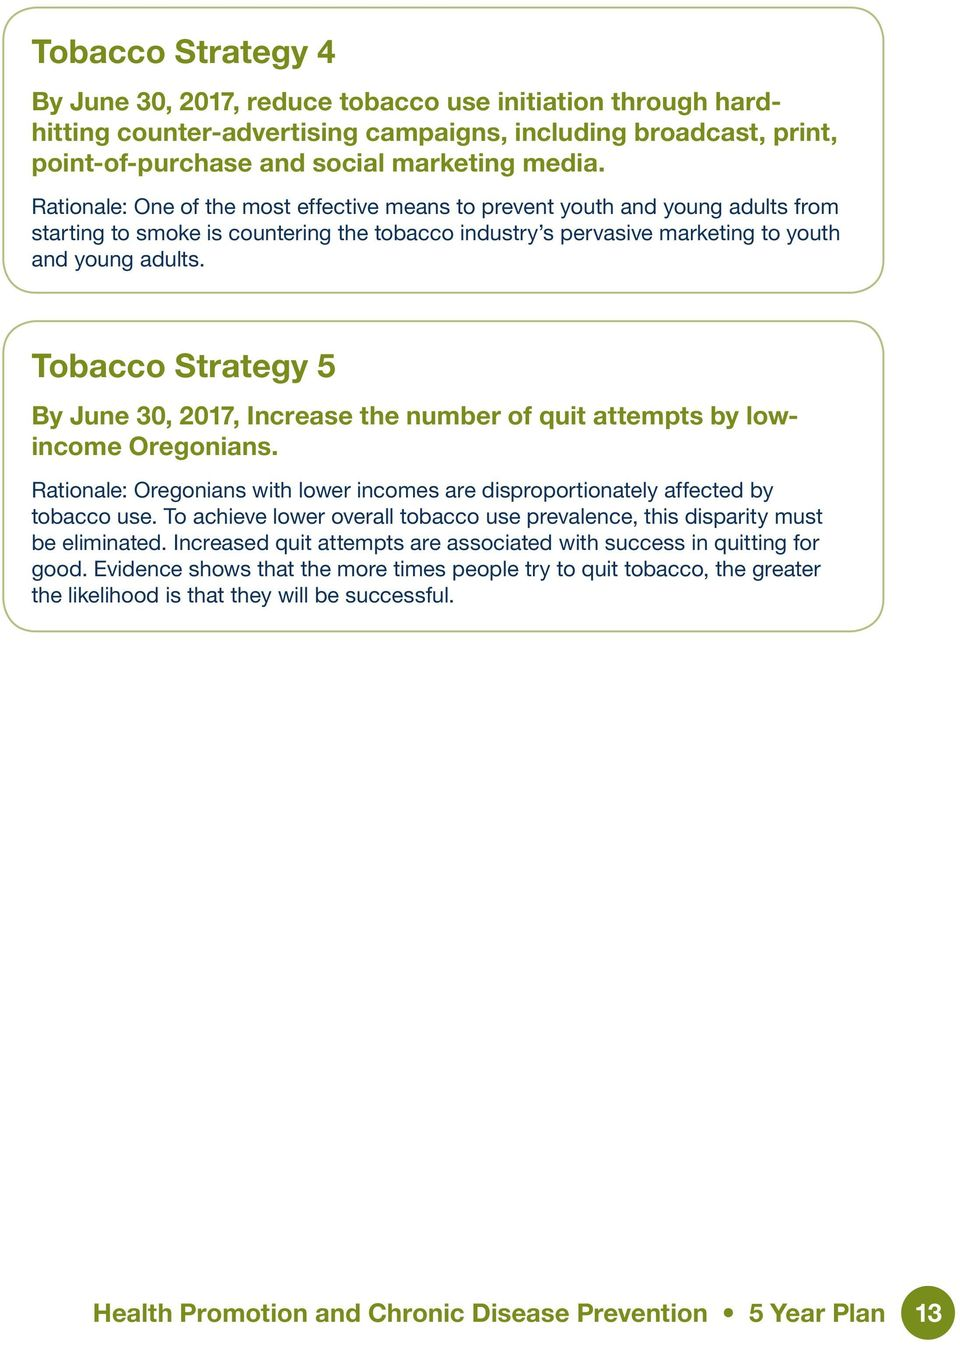 Tobacco Strategy 5 By June 30, 2017, Increase the number of quit attempts by lowincome Oregonians. Rationale: Oregonians with lower incomes are disproportionately affected by tobacco use.